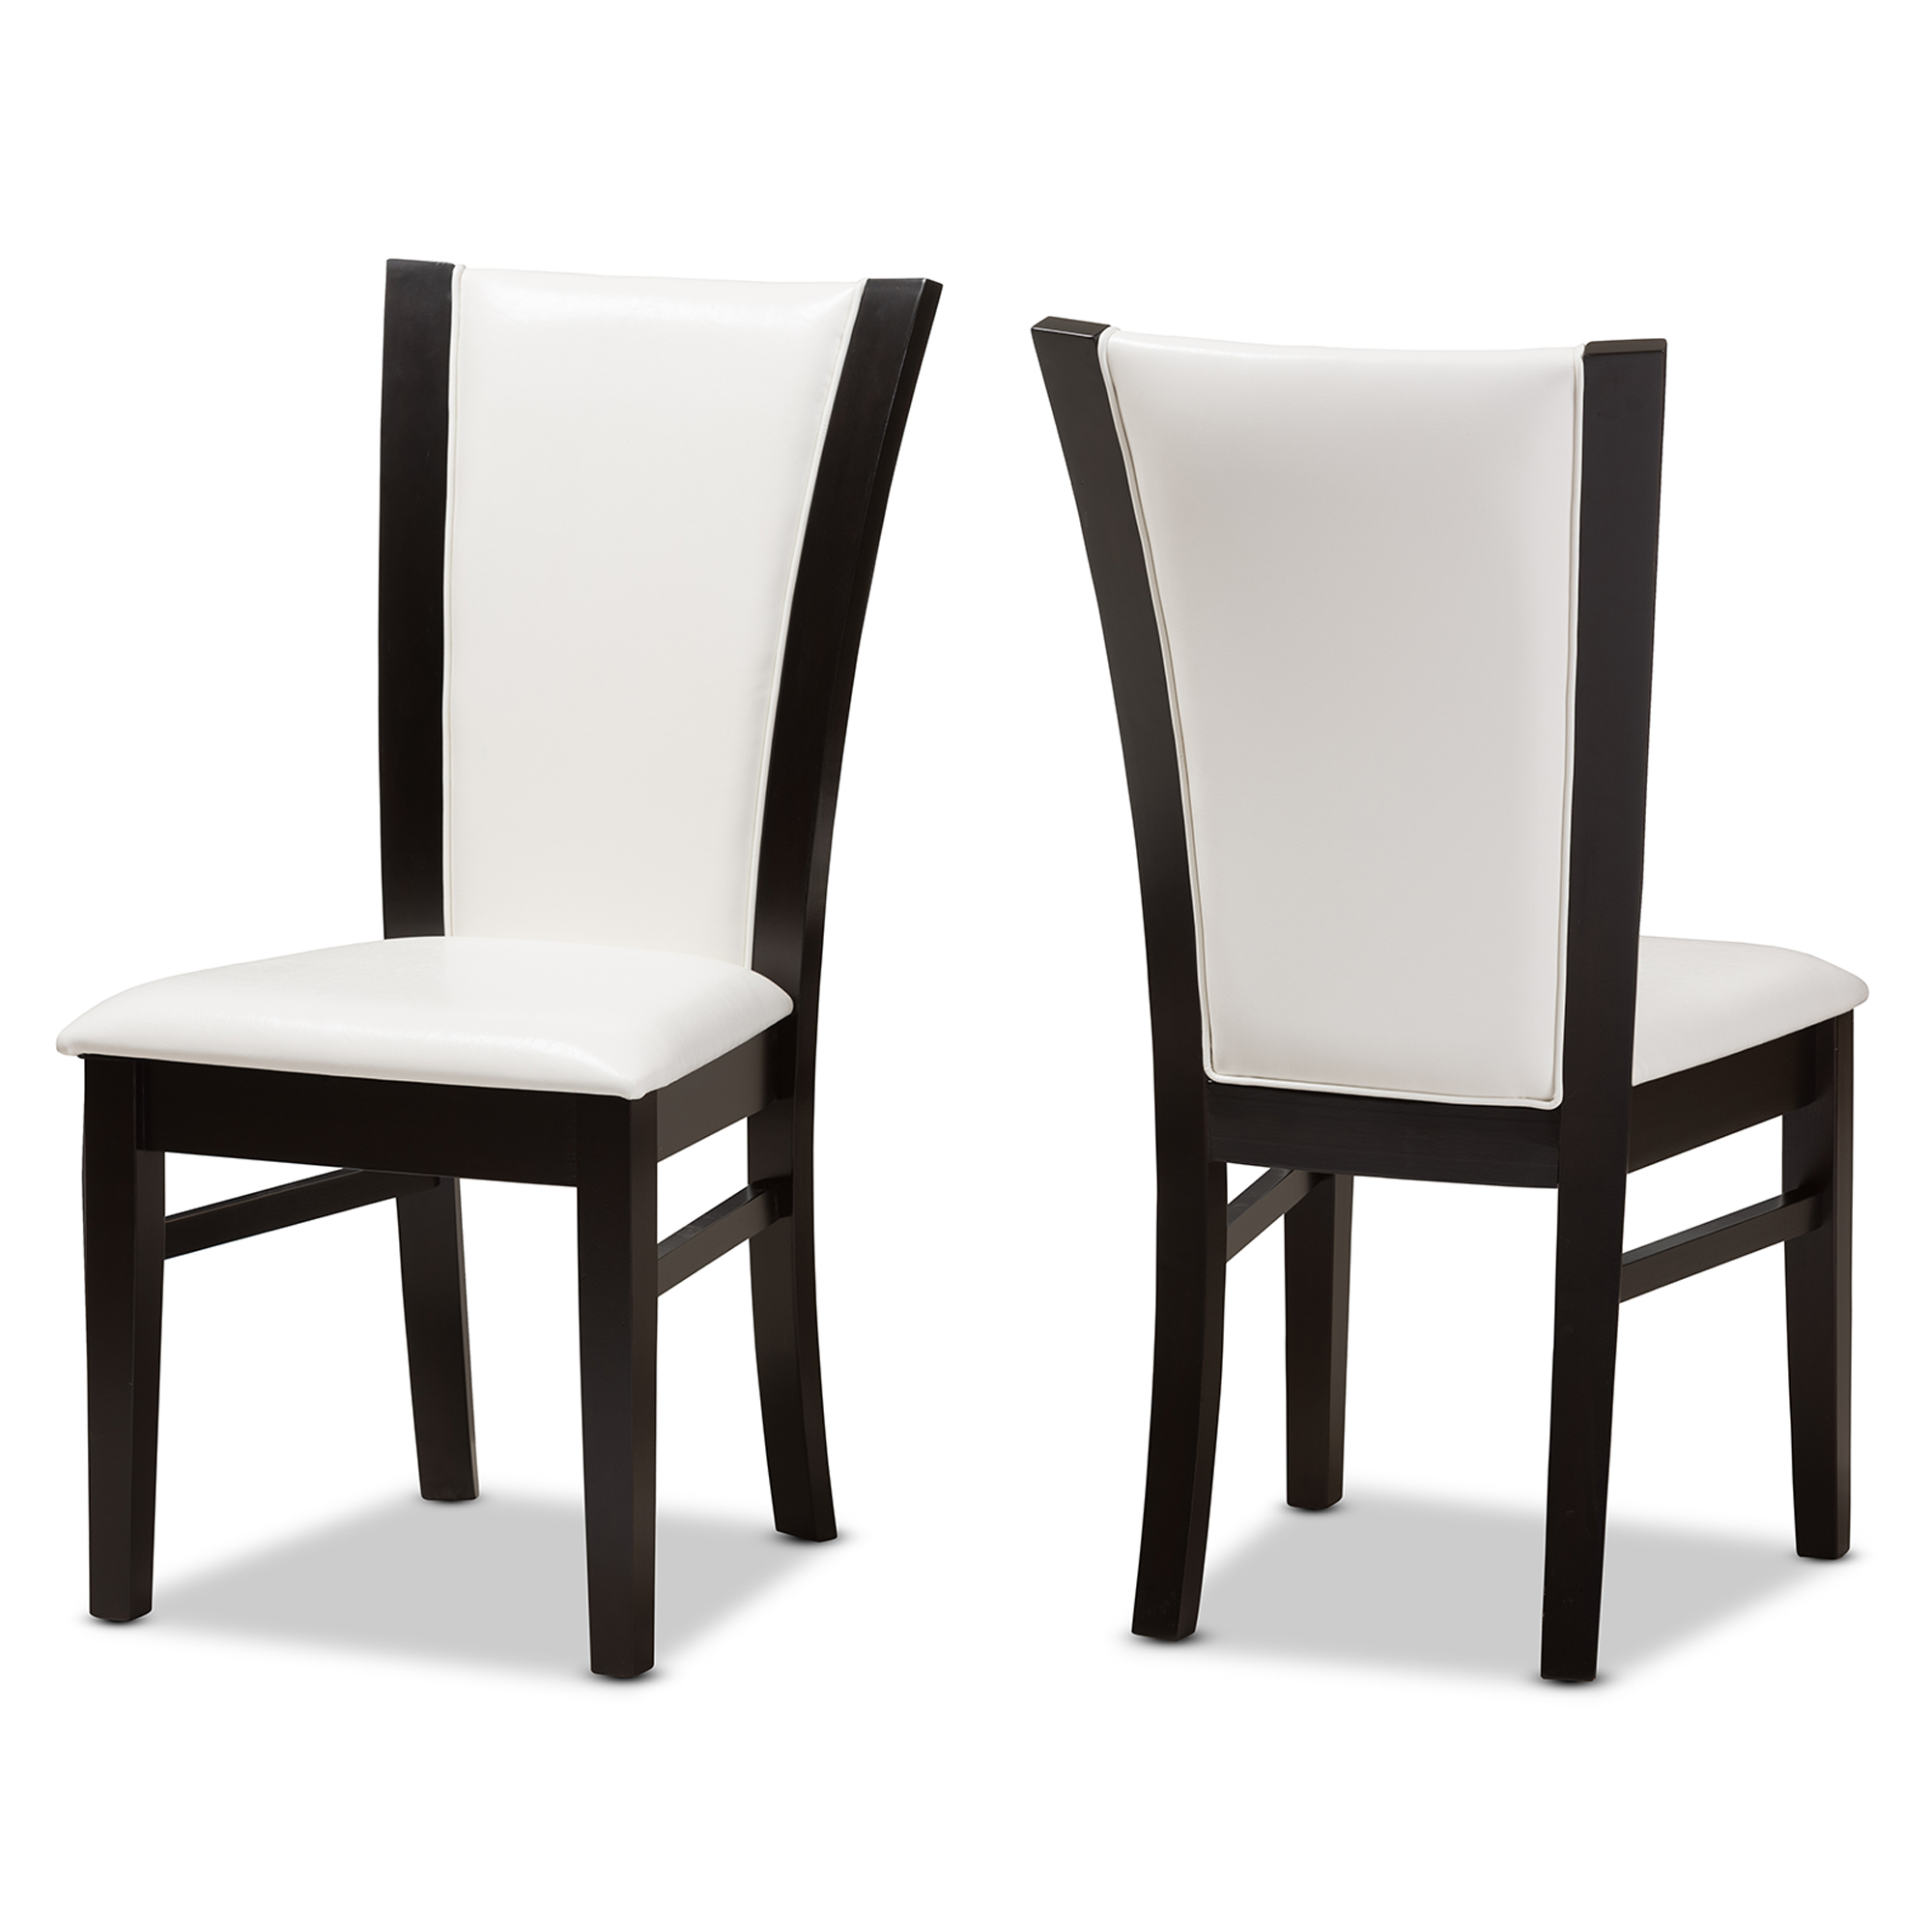 White Leather Dining Room Set: Baxton Studio Adley Modern And Contemporary Dark Brown